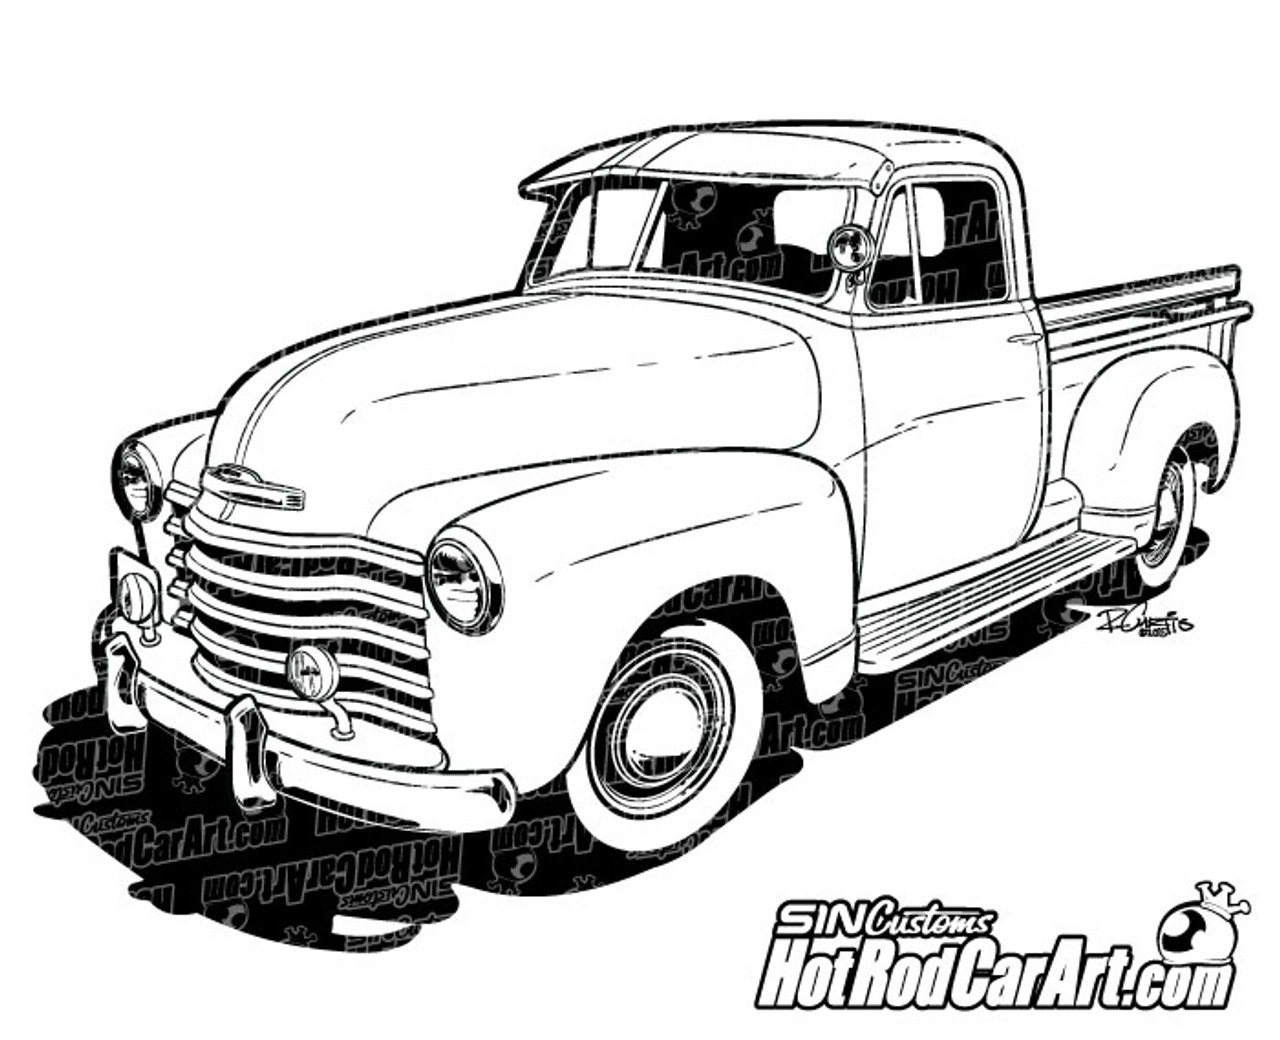 small resolution of 1947 chevrolet pickup truck 2015 ryan curtis hotrodcarart com